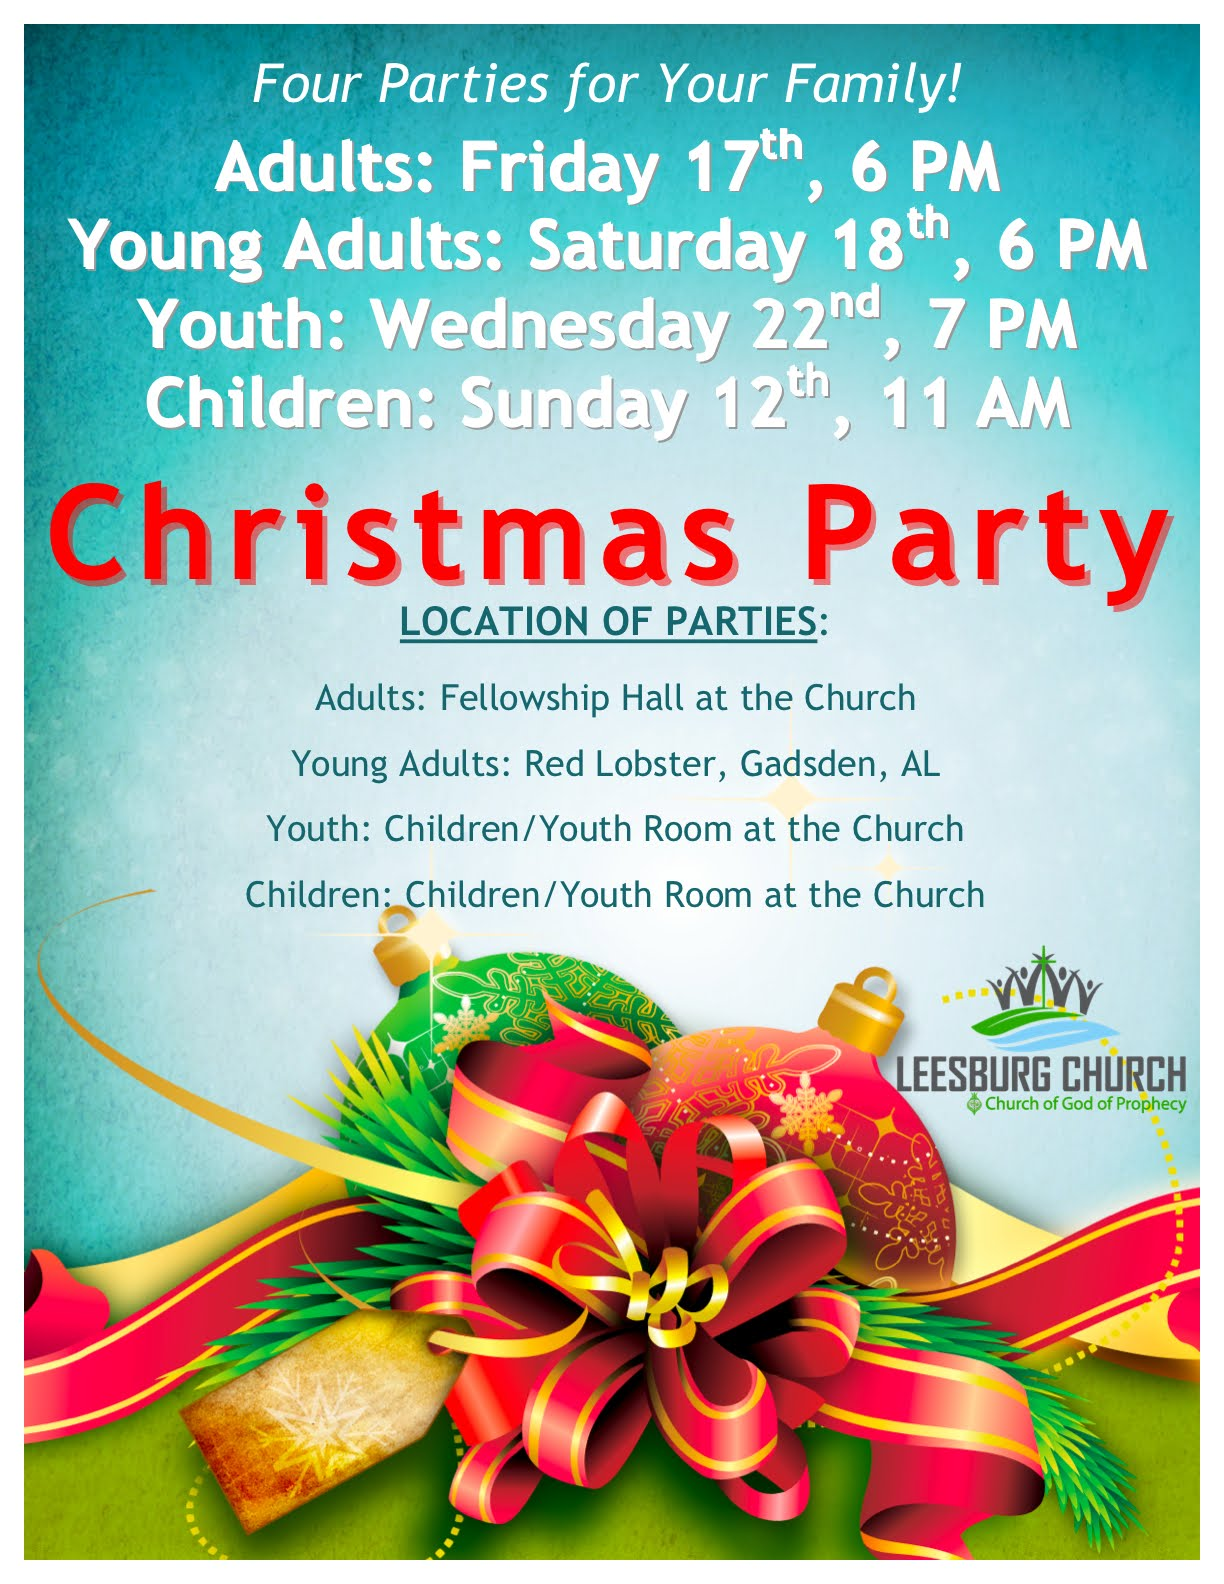 Christmas Party Ideas For Church Part - 49: The Leesburg Church Church Christmas Parties